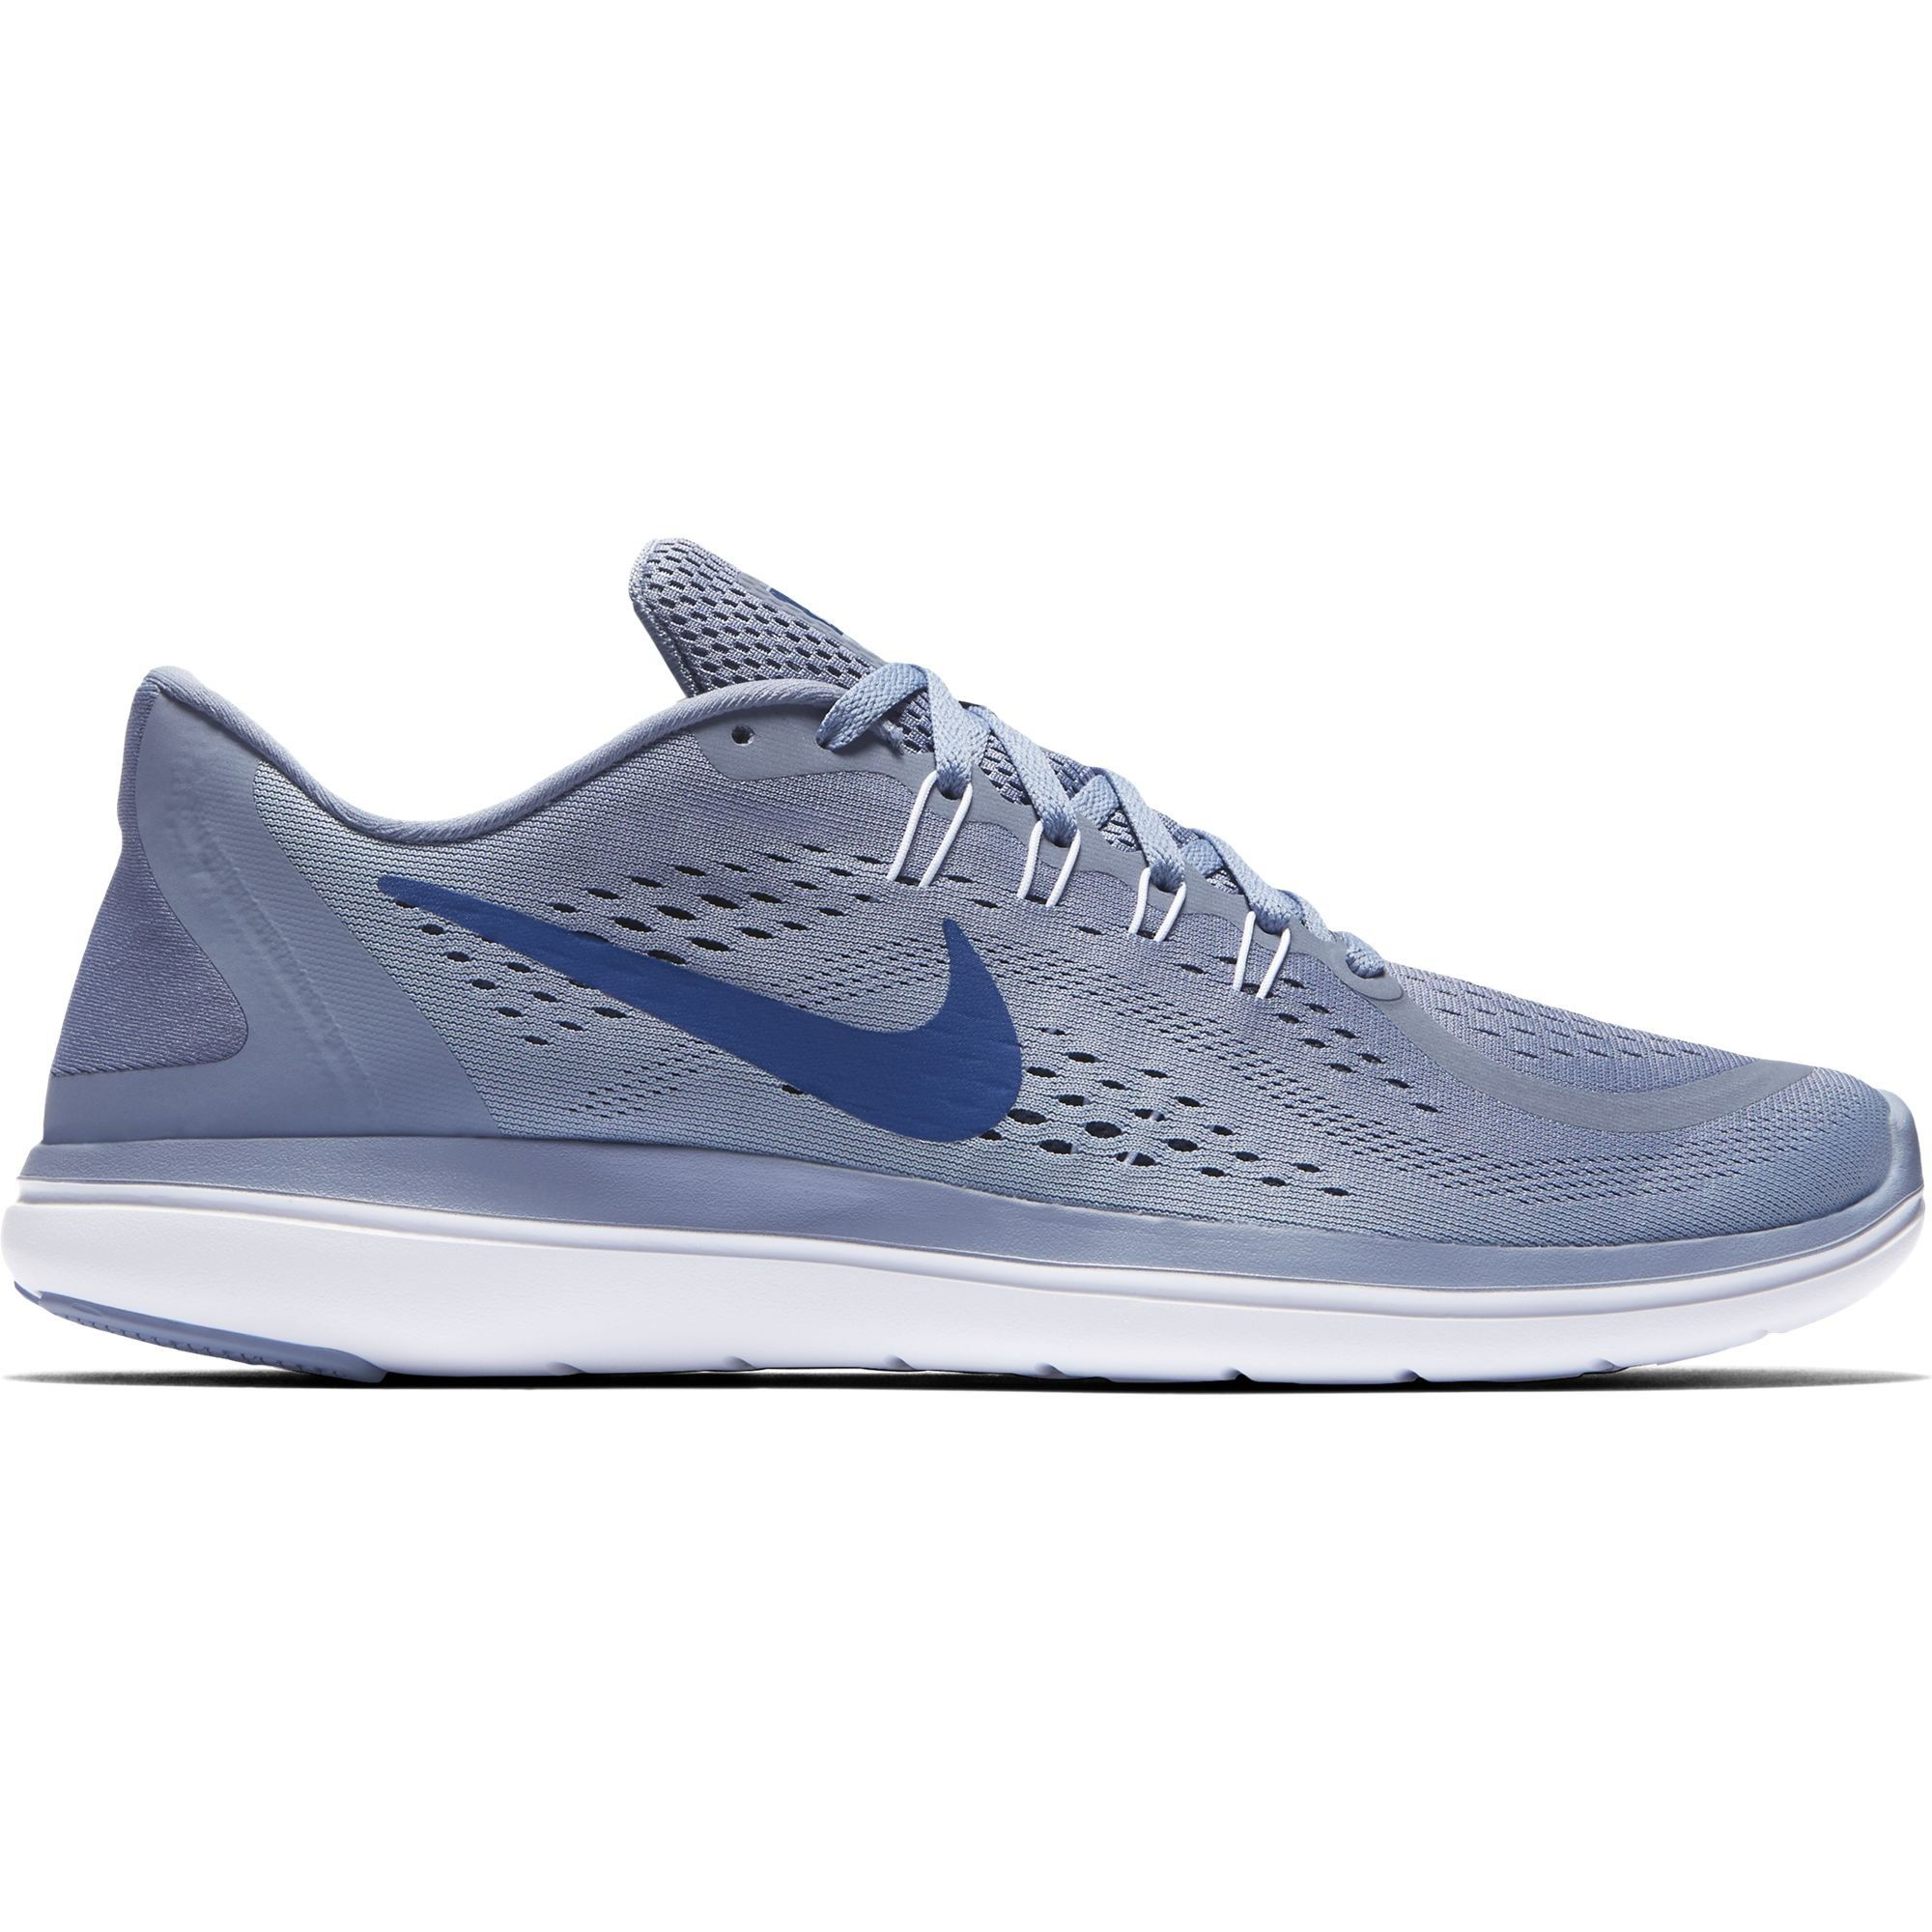 finest selection dd092 73de2 Galleon - Nike Men s Flex RN 2017 Running Shoe Dark Sky Blue Gym  Blue Glacier Grey Size 15 M US